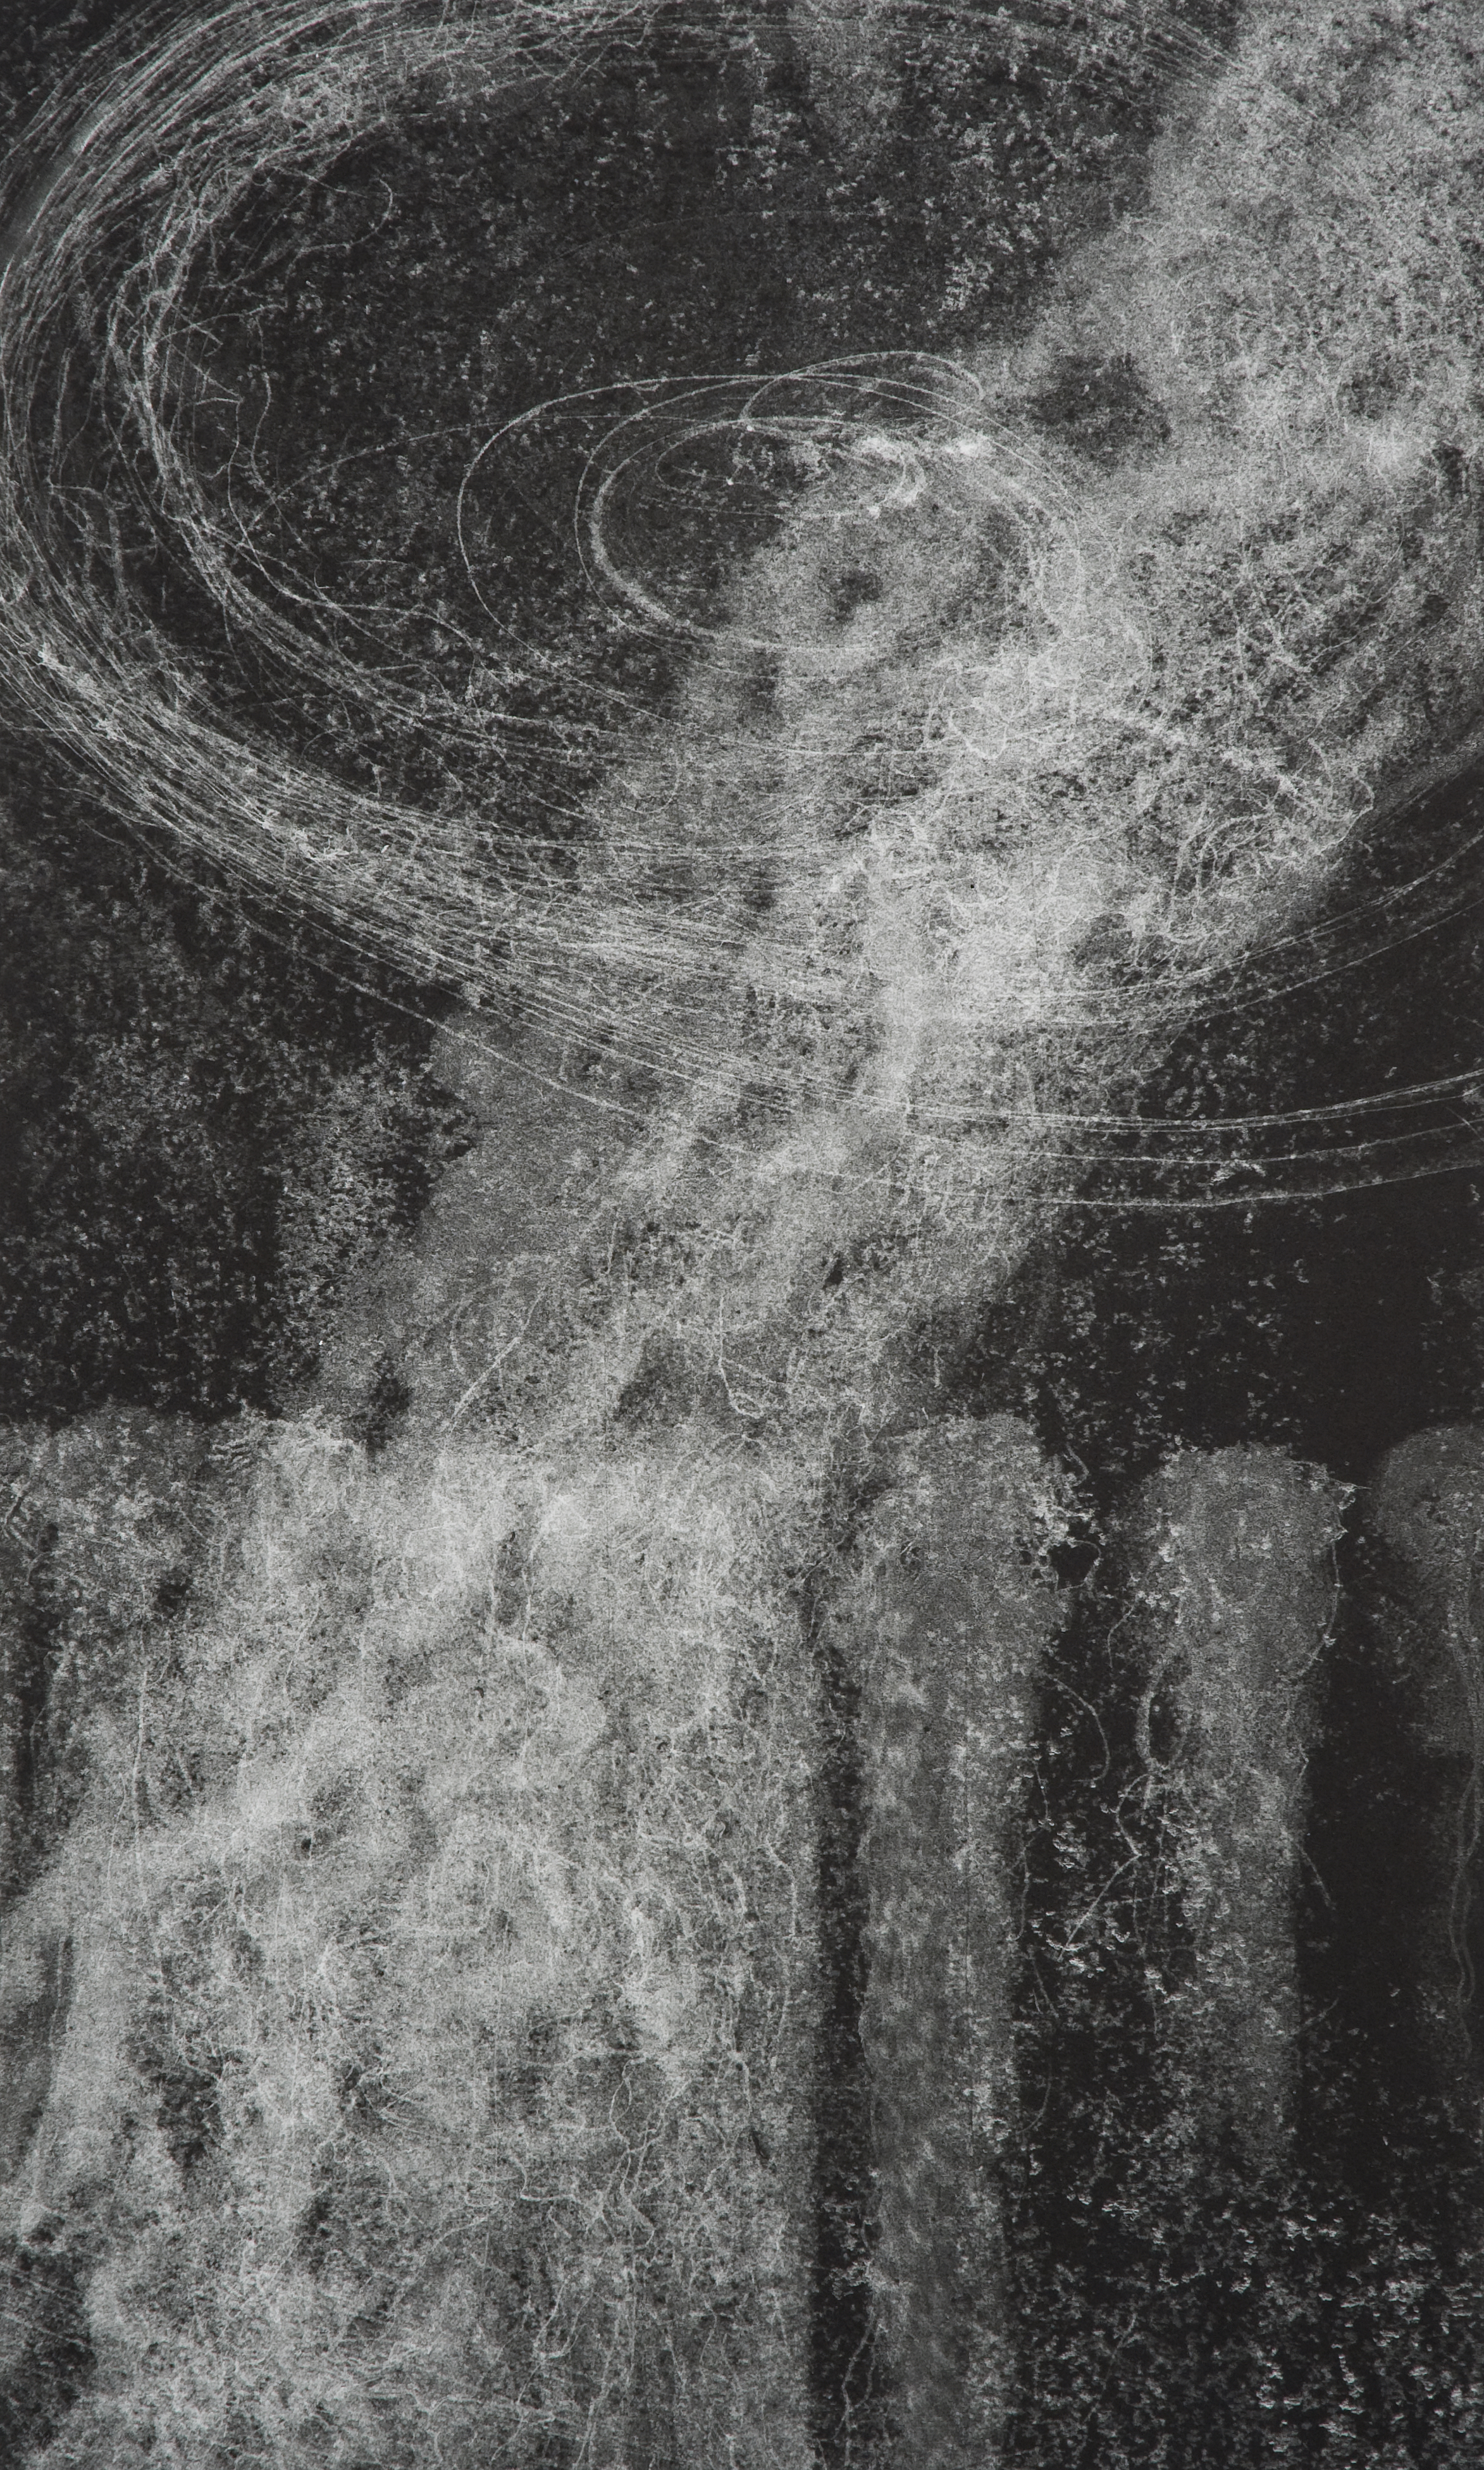 Hilda Shen,  Illumined Triptych (right) , 2010. Set of 3 unique monotypes, 15 x 25 inches, ©Hilda Shen, courtesy of Fou Gallery